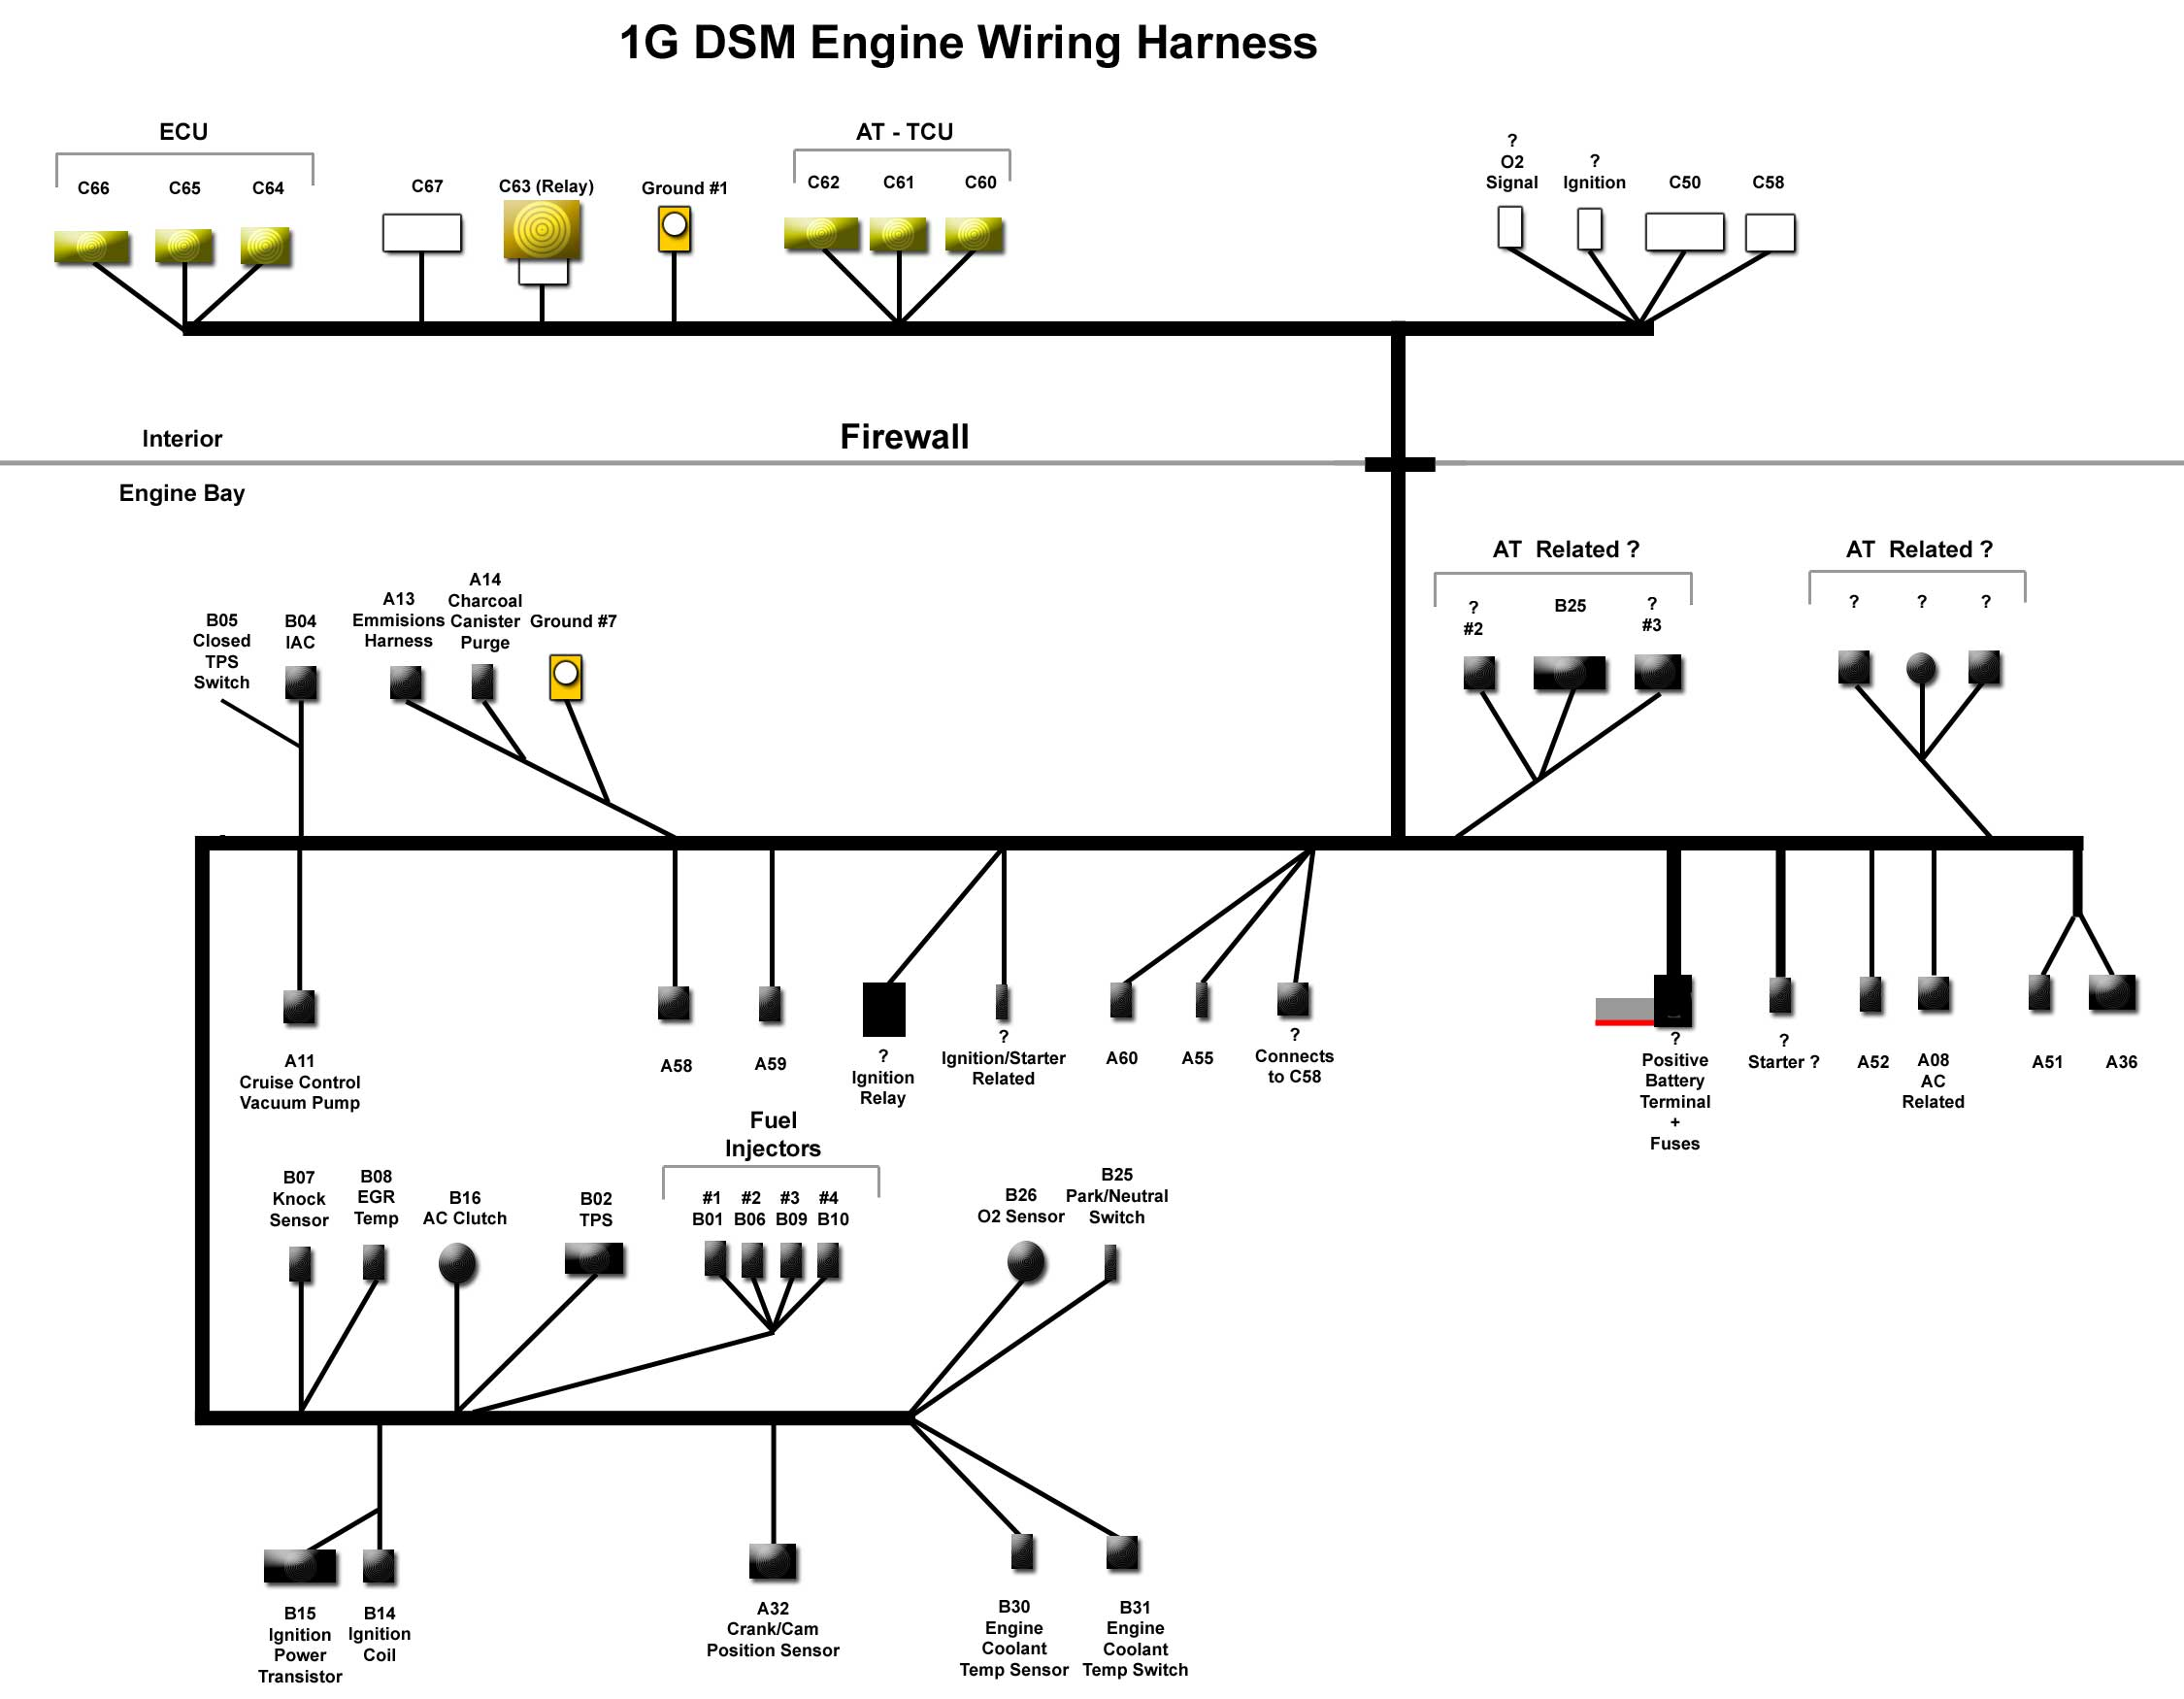 1G DSM EngineHarness 1gb dsm 4g63 turbo wiring harness diagram wiring harness diagram at crackthecode.co